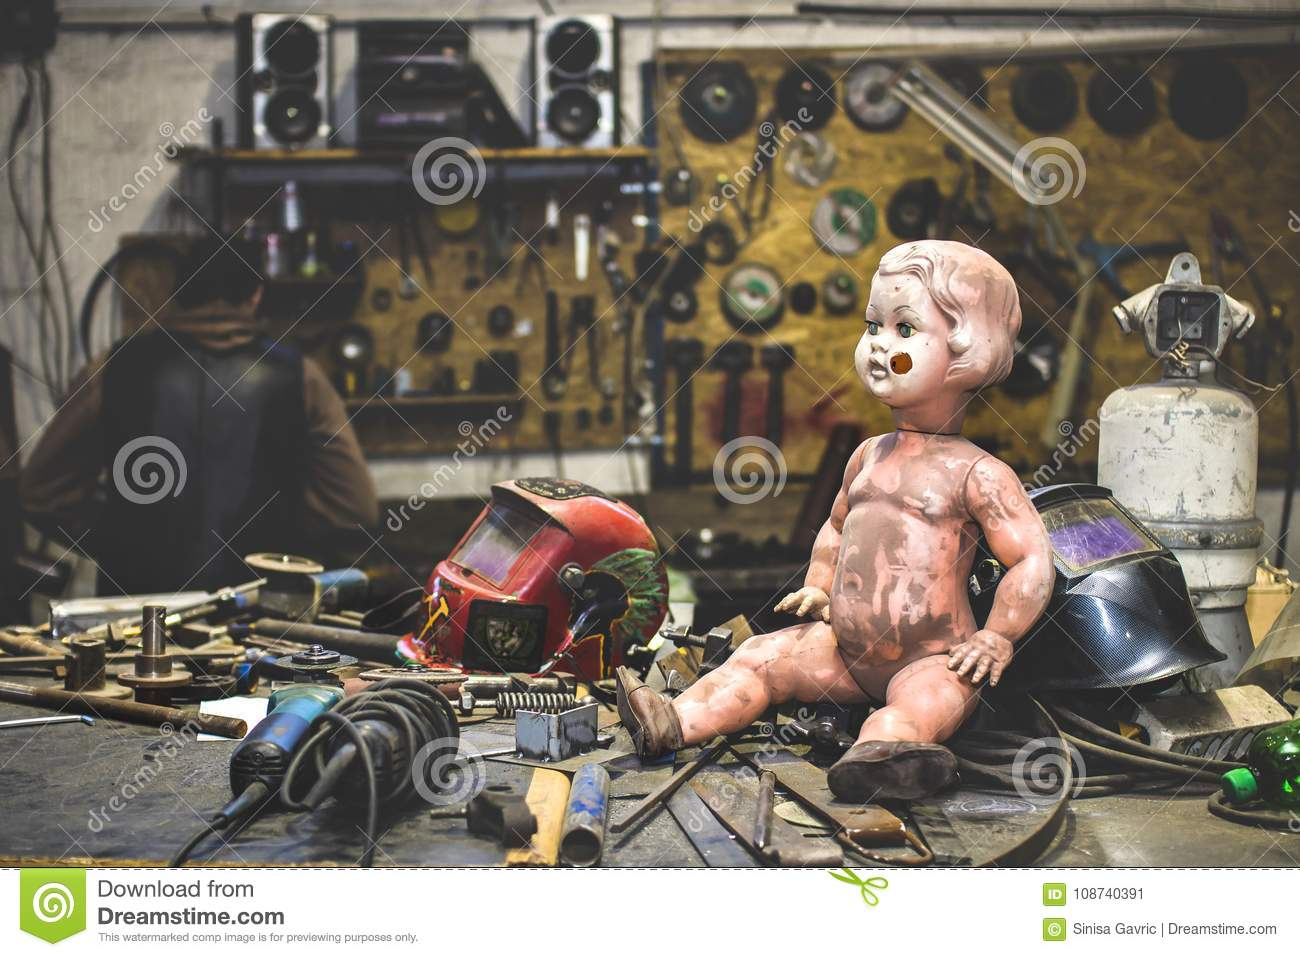 Dirty plastic baby doll posing inside of a metal work shop